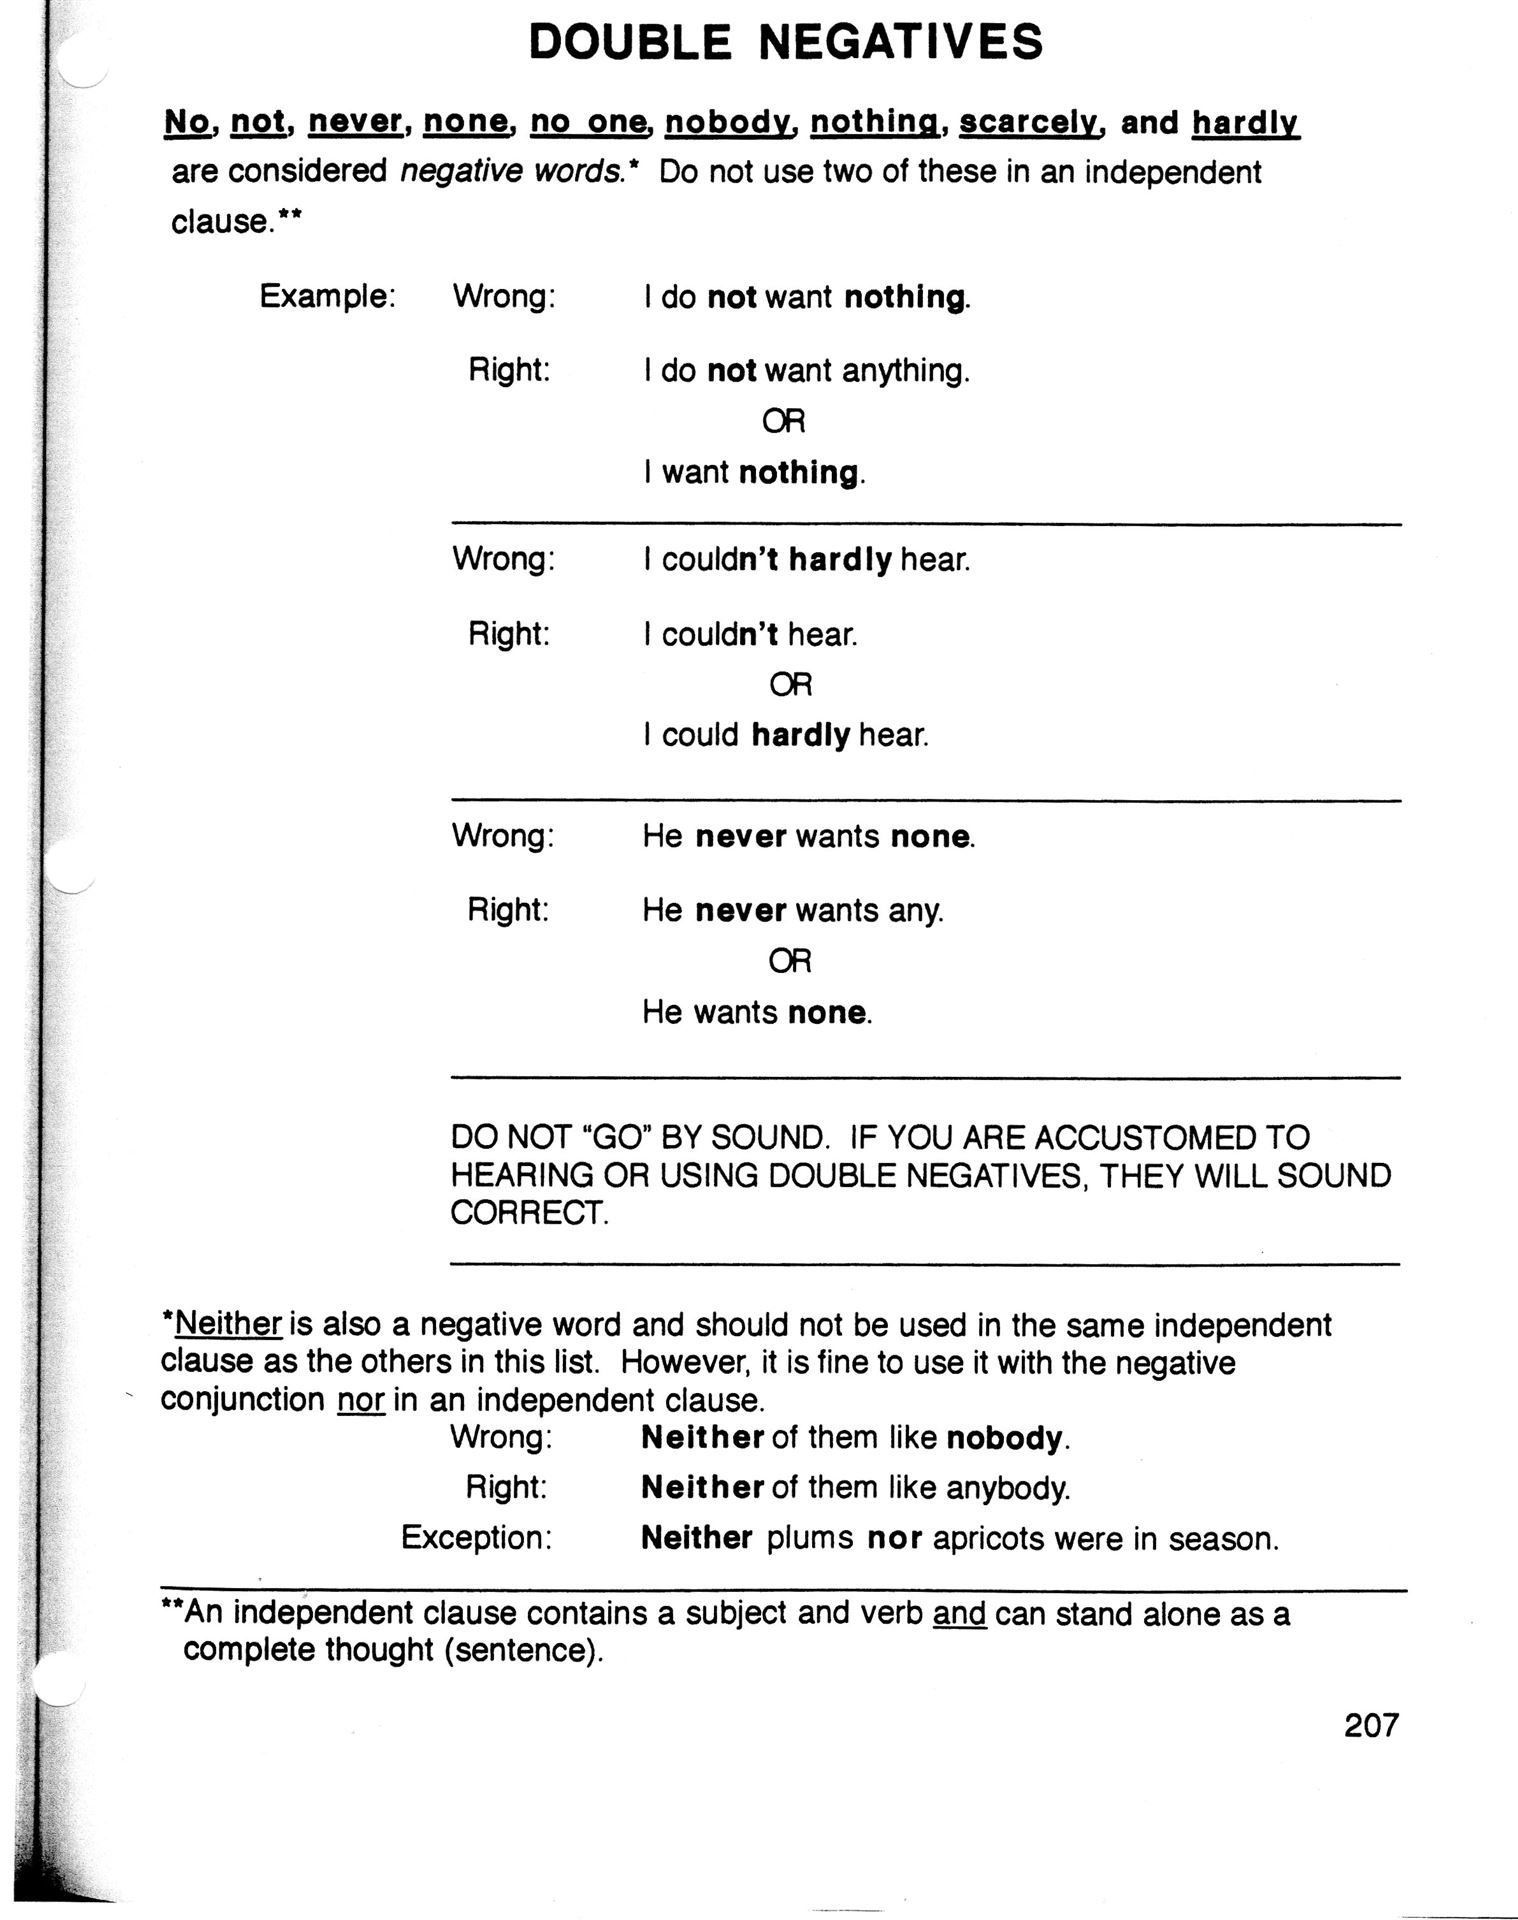 Worksheet Double Negative Worksheet Grass Fedjp